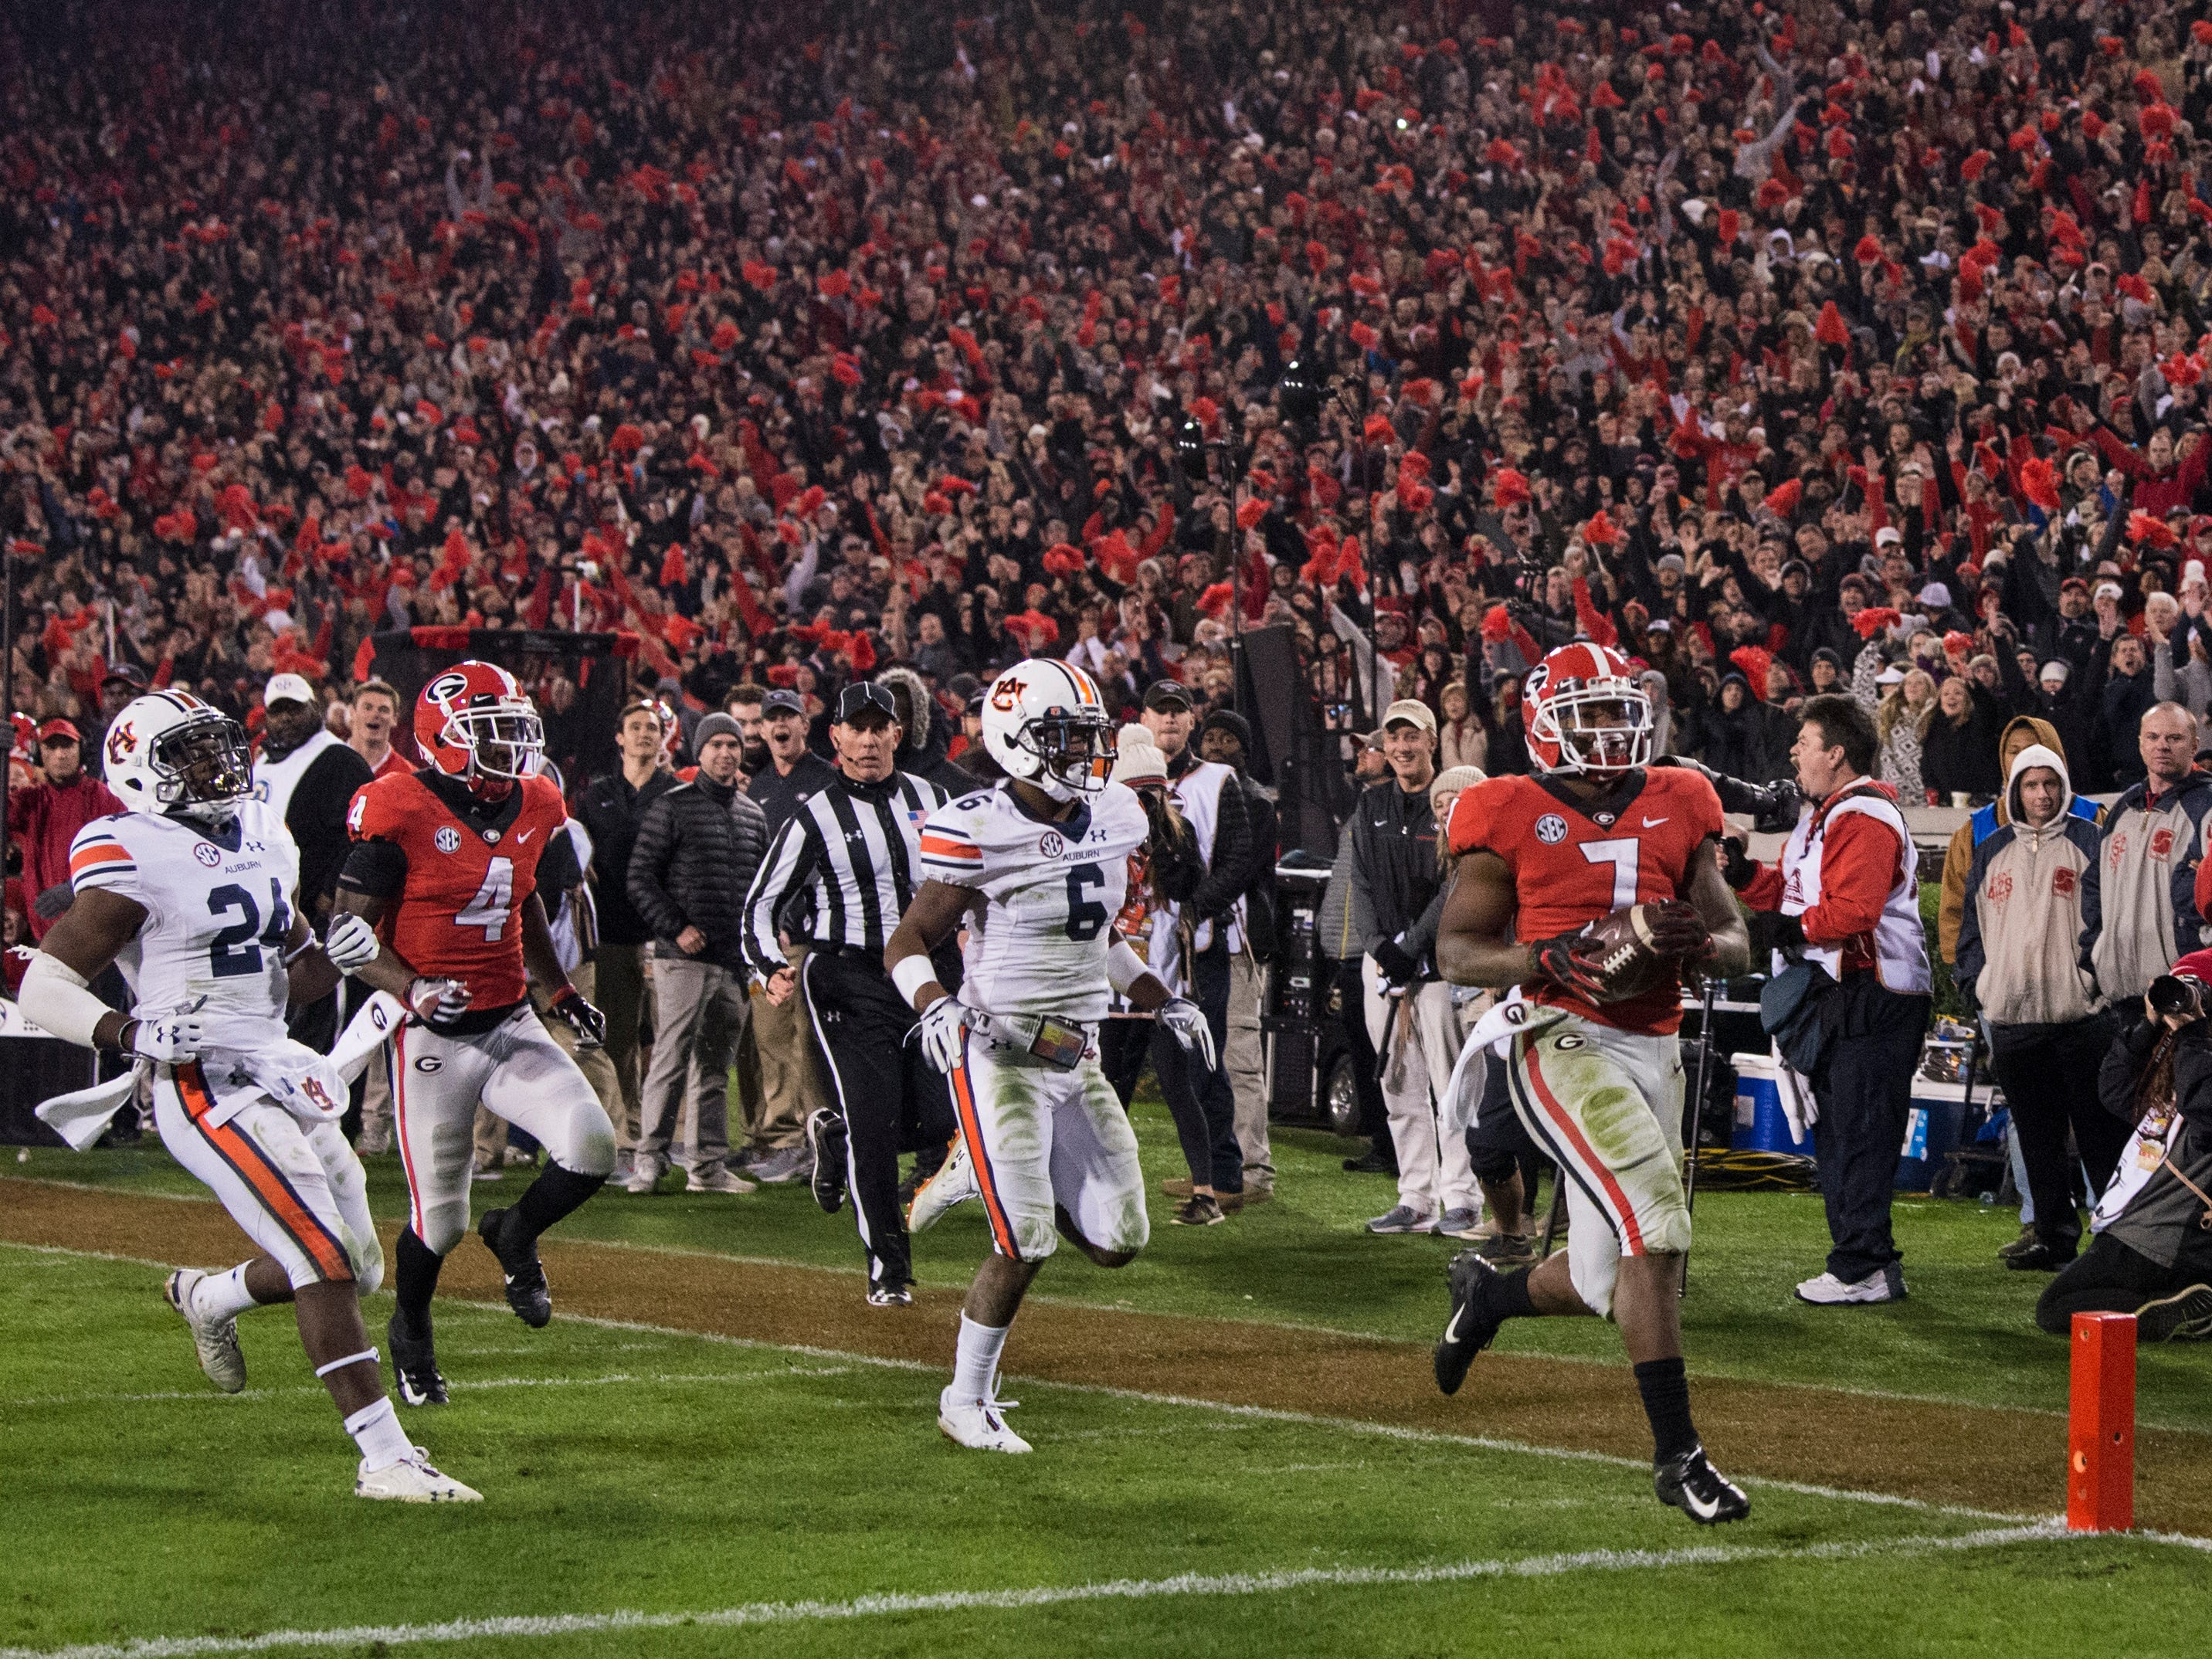 Georgia running back D'Andre Swift (7) runs into the end zone after breaking a 77-yard run against  Auburn at Sanford Stadium in Athens, Ga., on Saturday, Nov. 10, 2018. Georgia defeated Auburn 27-10.